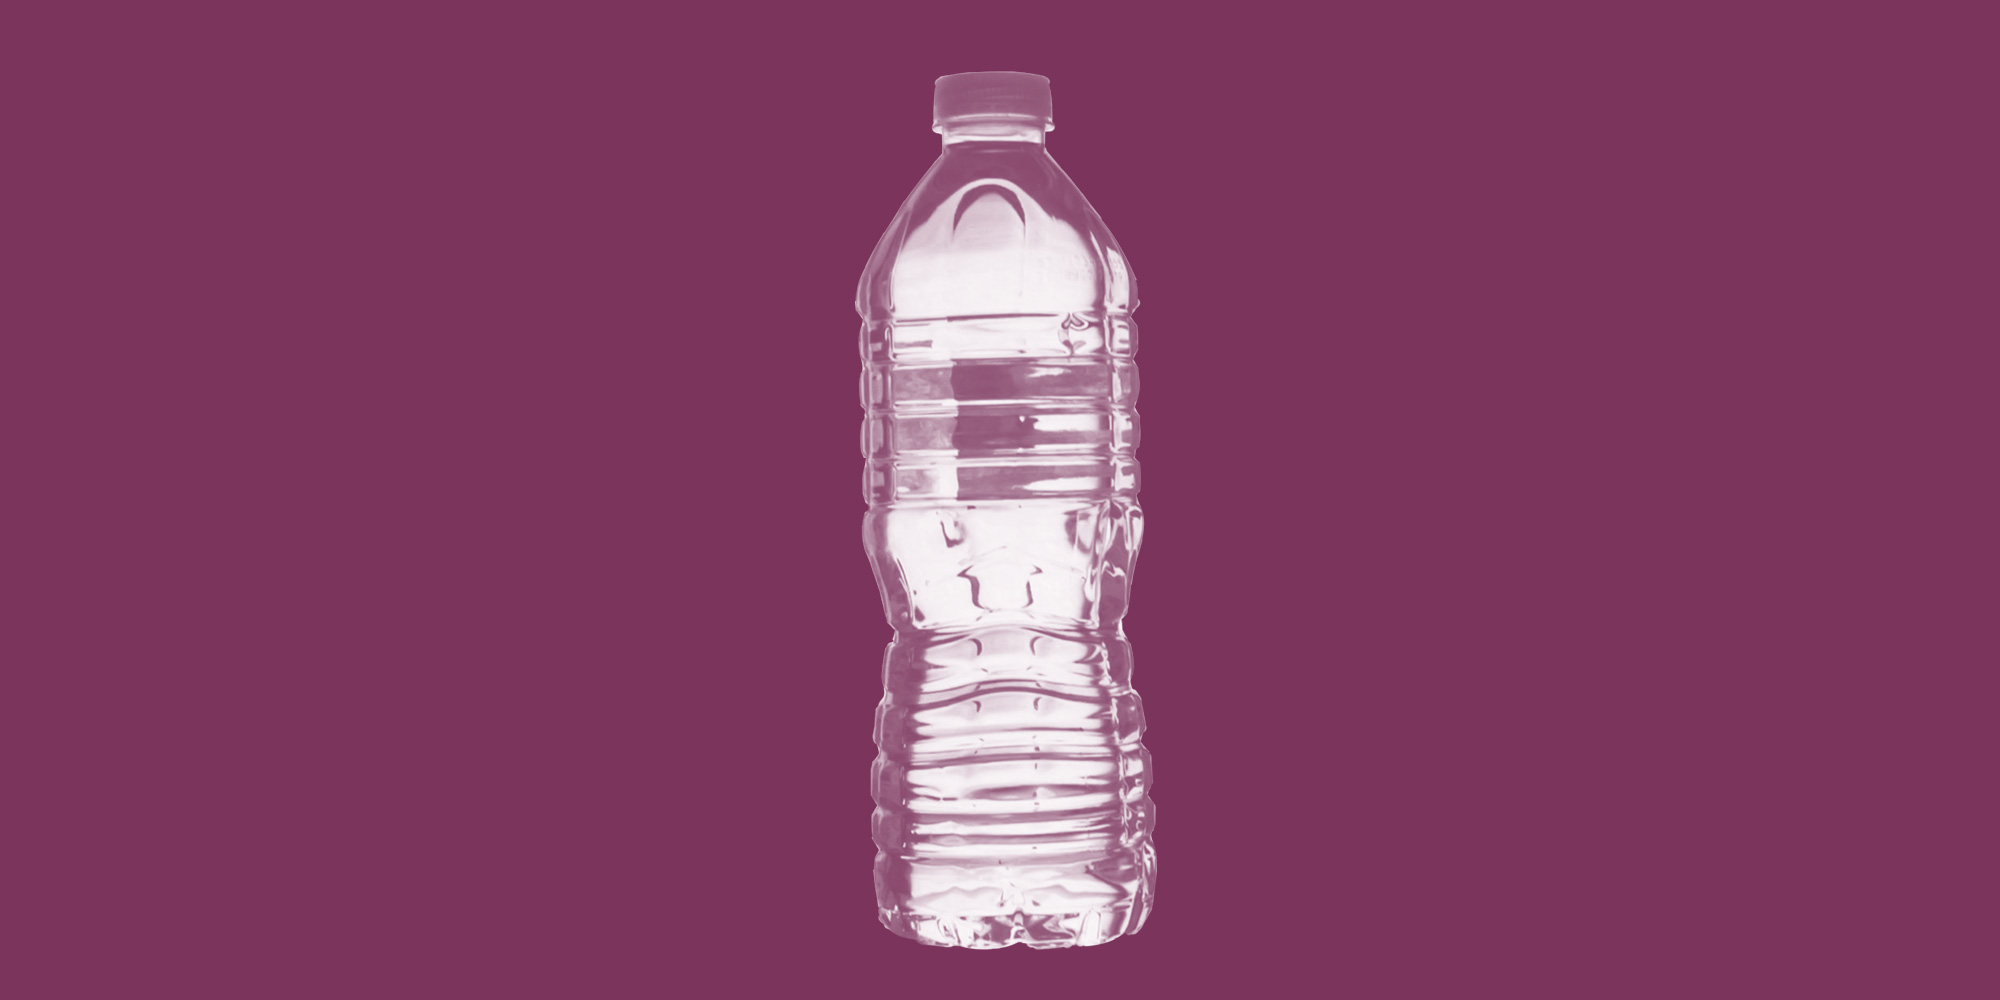 Water bottle. Alcohol is not good for you